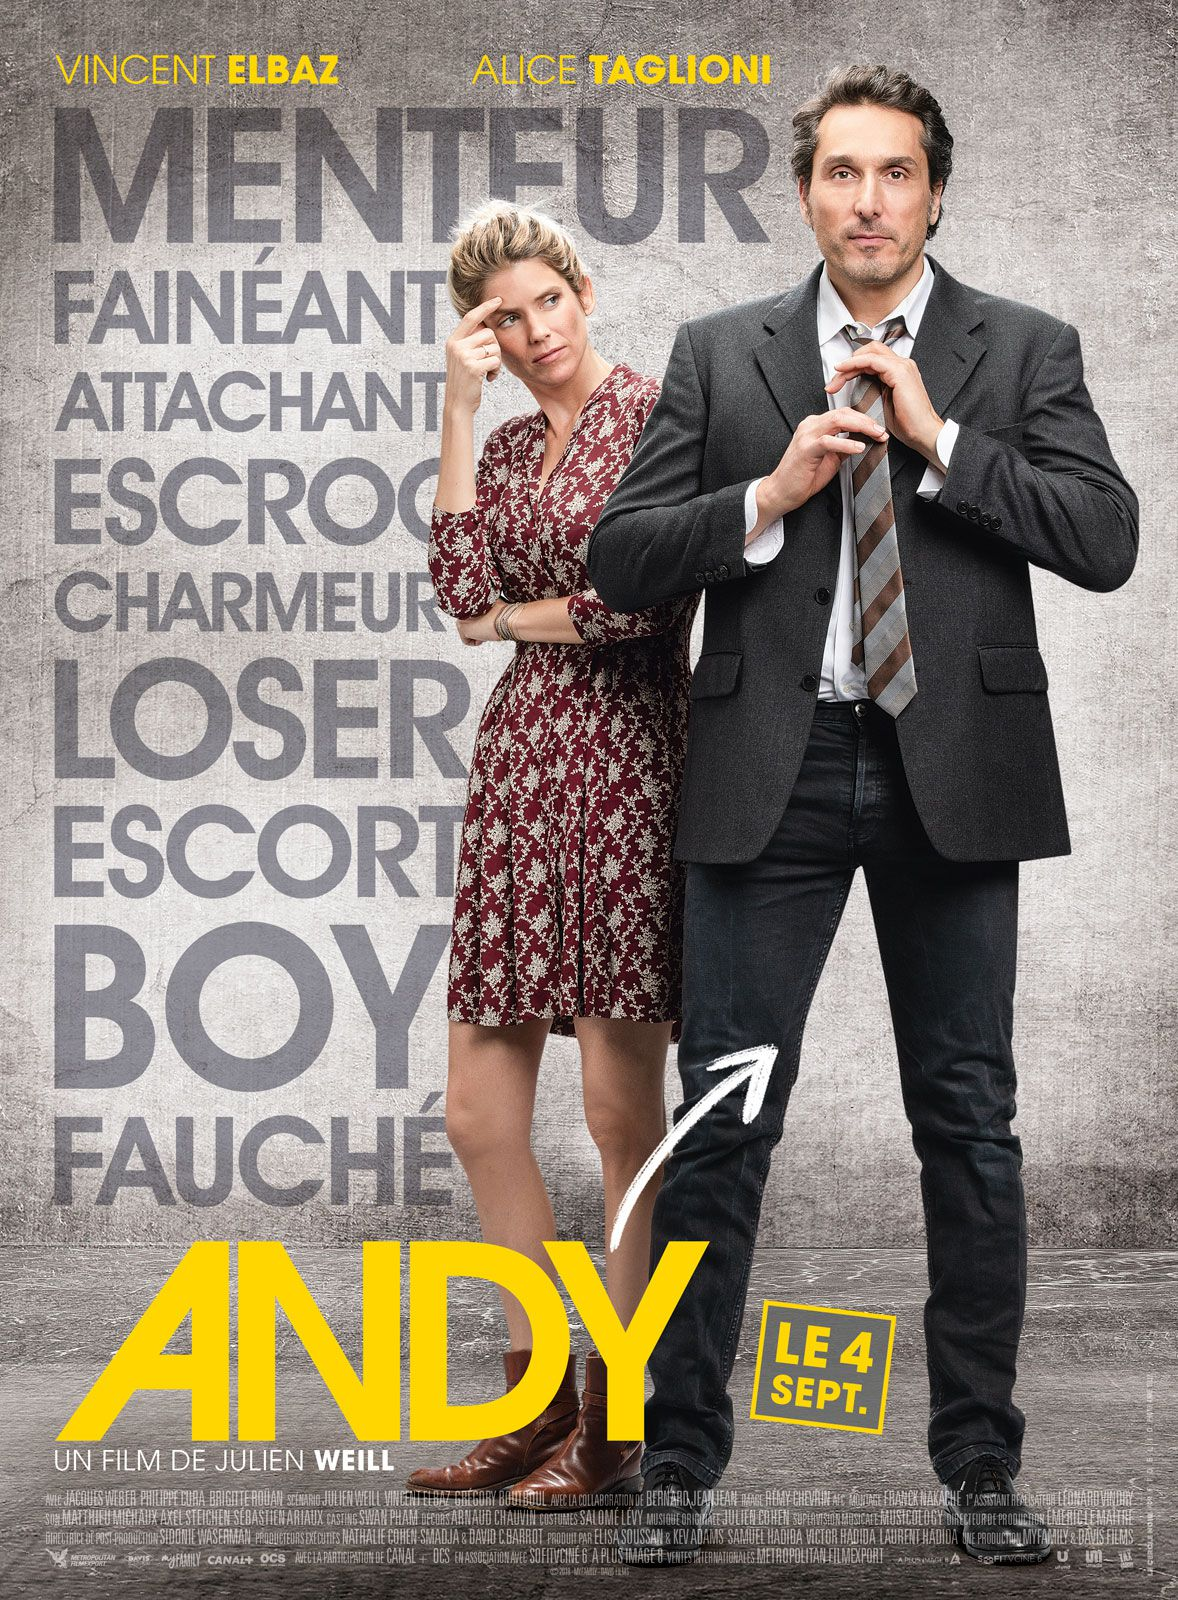 Andy - Film (2019)